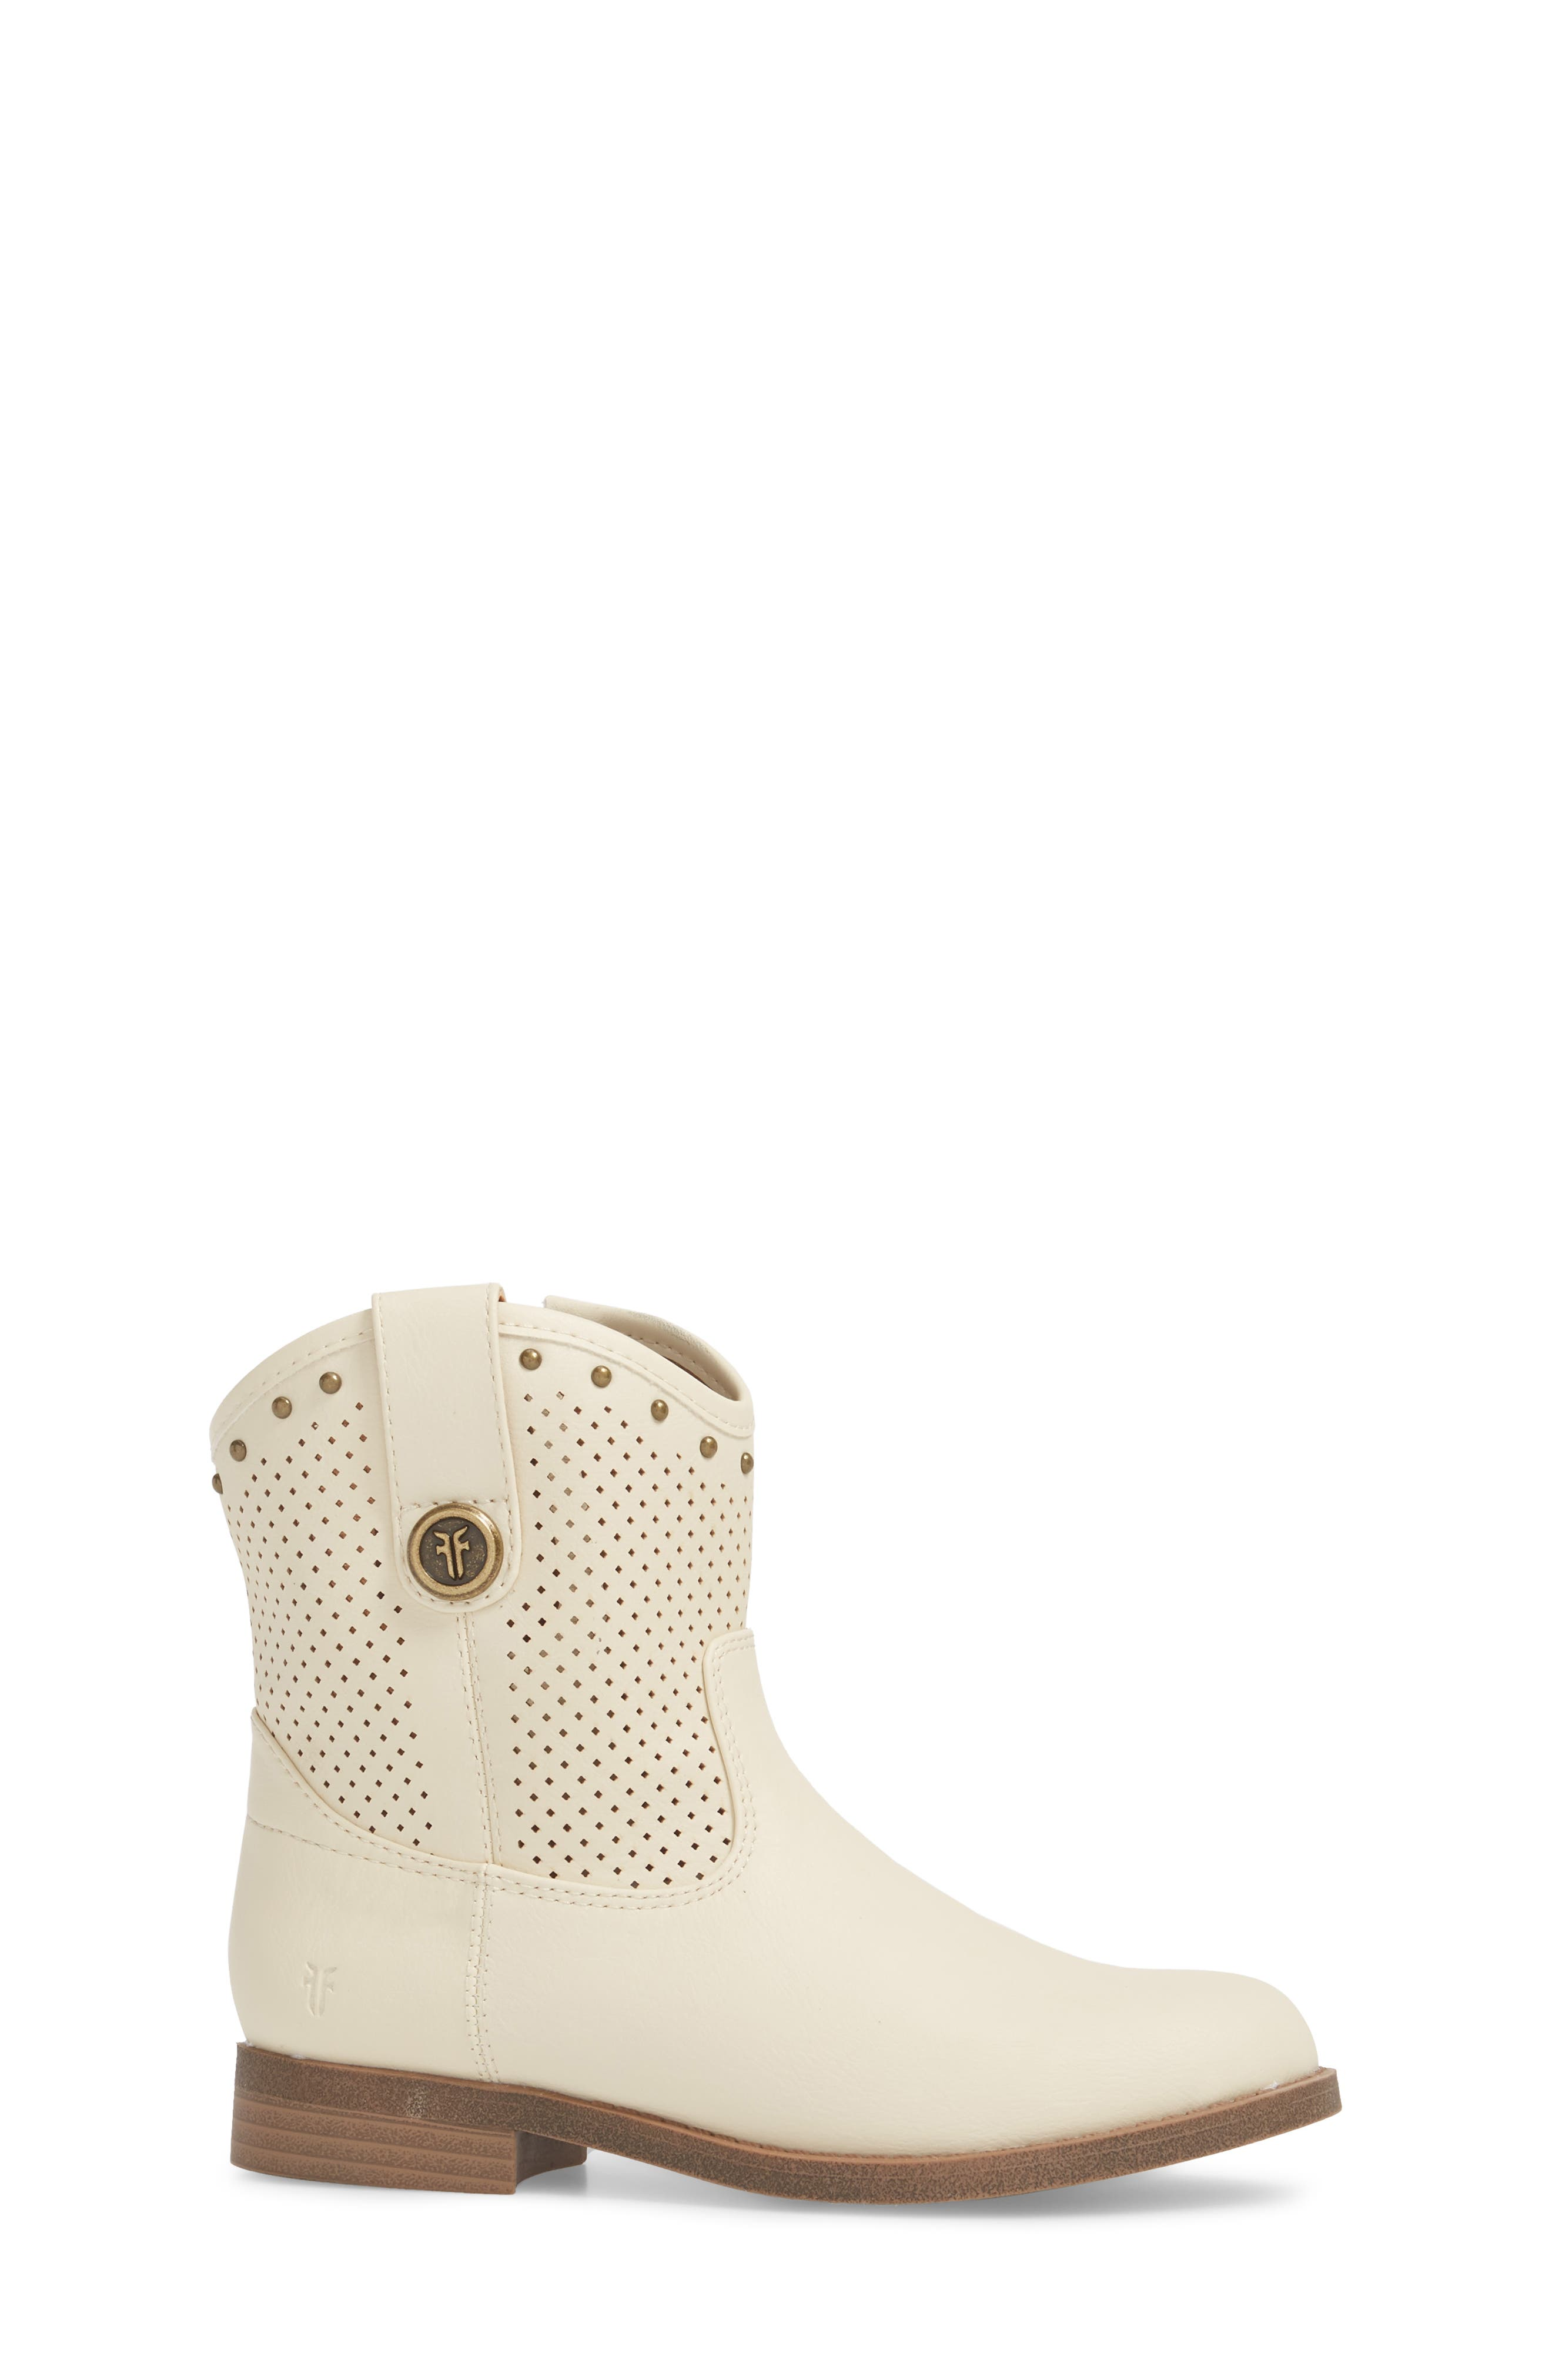 Melissa Perforated Button Boot,                             Alternate thumbnail 3, color,                             White